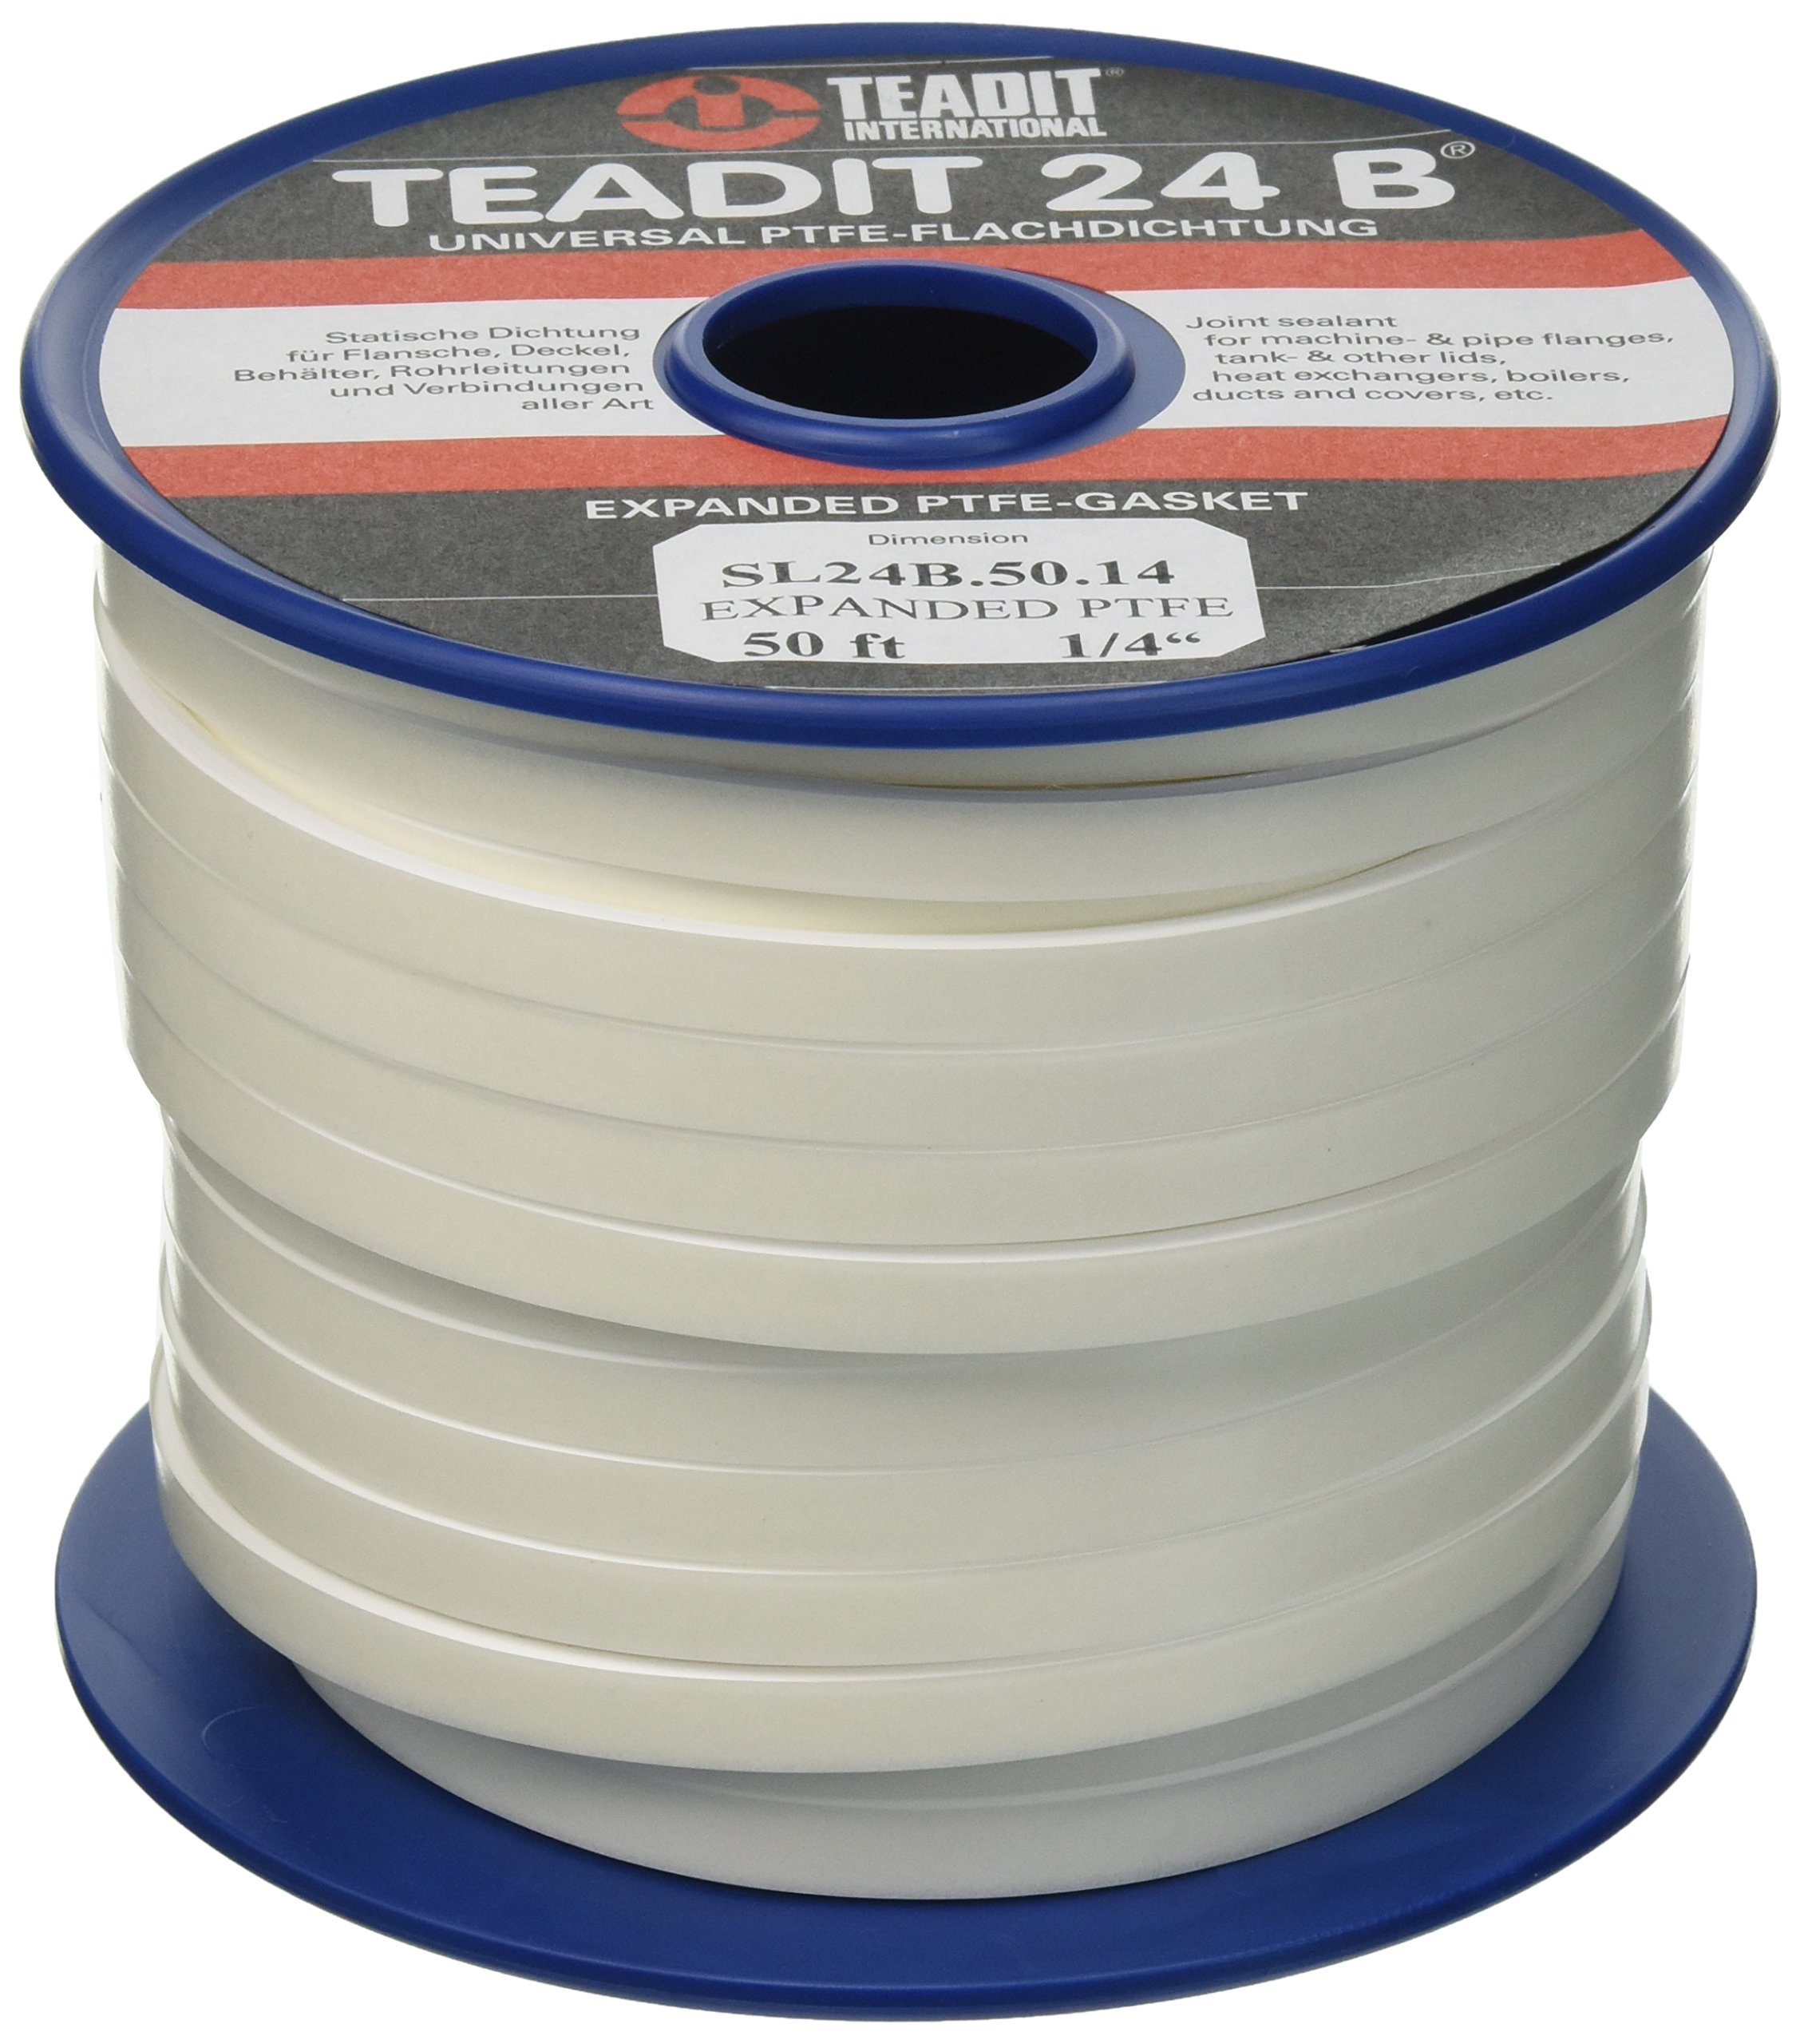 Sterling Seal and Supply (STCC)  1500.25050 1500/Teadit 24B White PTFE Joint Sealant for Applications in Steel, Glass Lined, PVC and Fiber Glass Pipe Flanges, Fume Ducts, Concrete Lids, Heat Exchangers, 1/4'' Wide, 50' by Sterling Seal & Supply, Inc. (STCC) (Image #2)